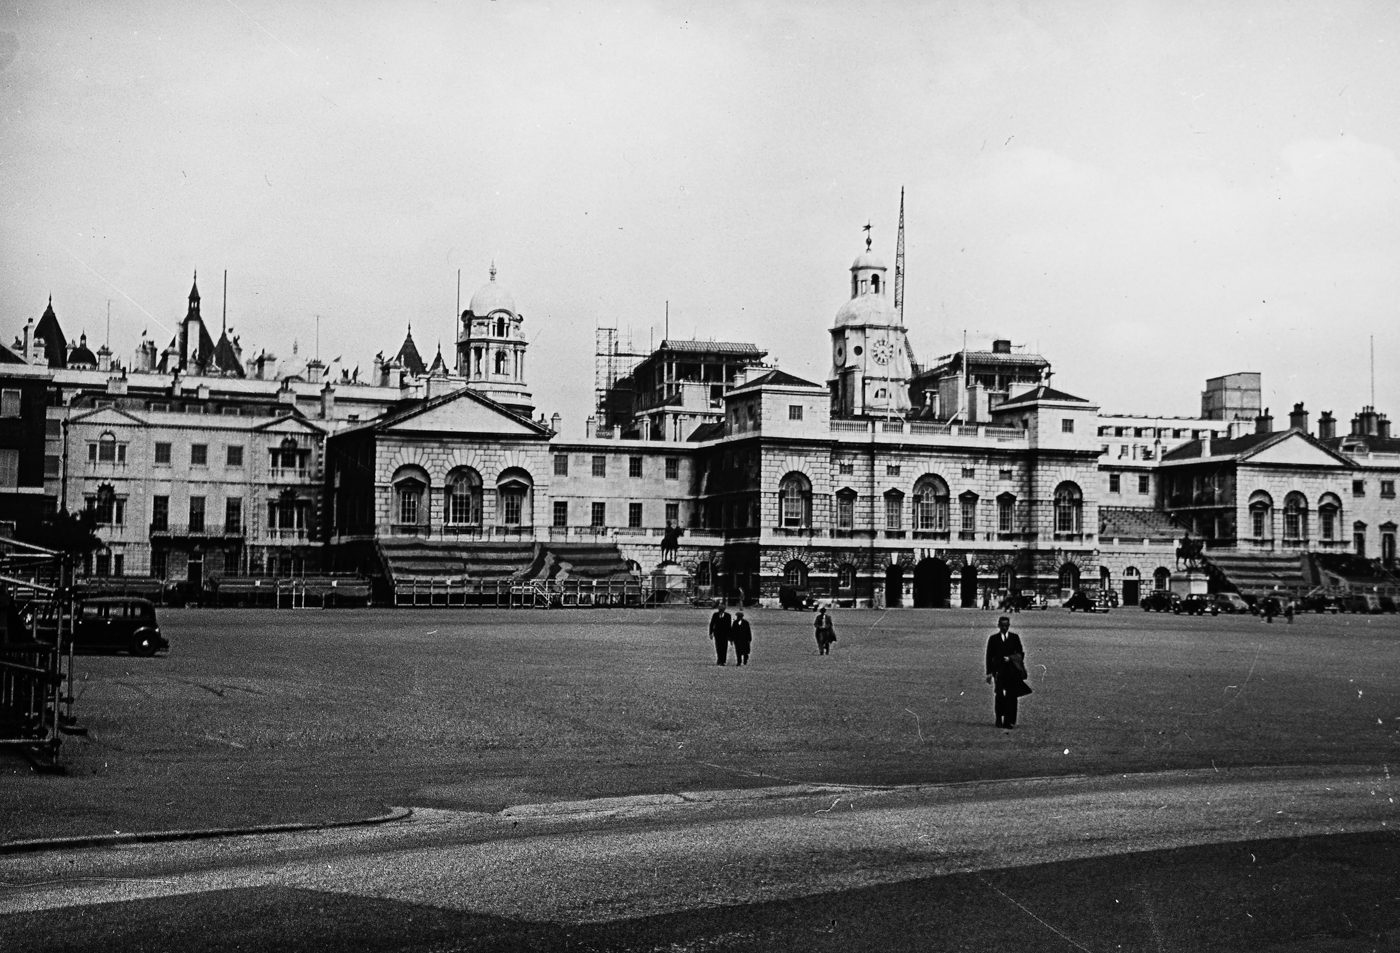 094_79 Horse Guards Parade Ground